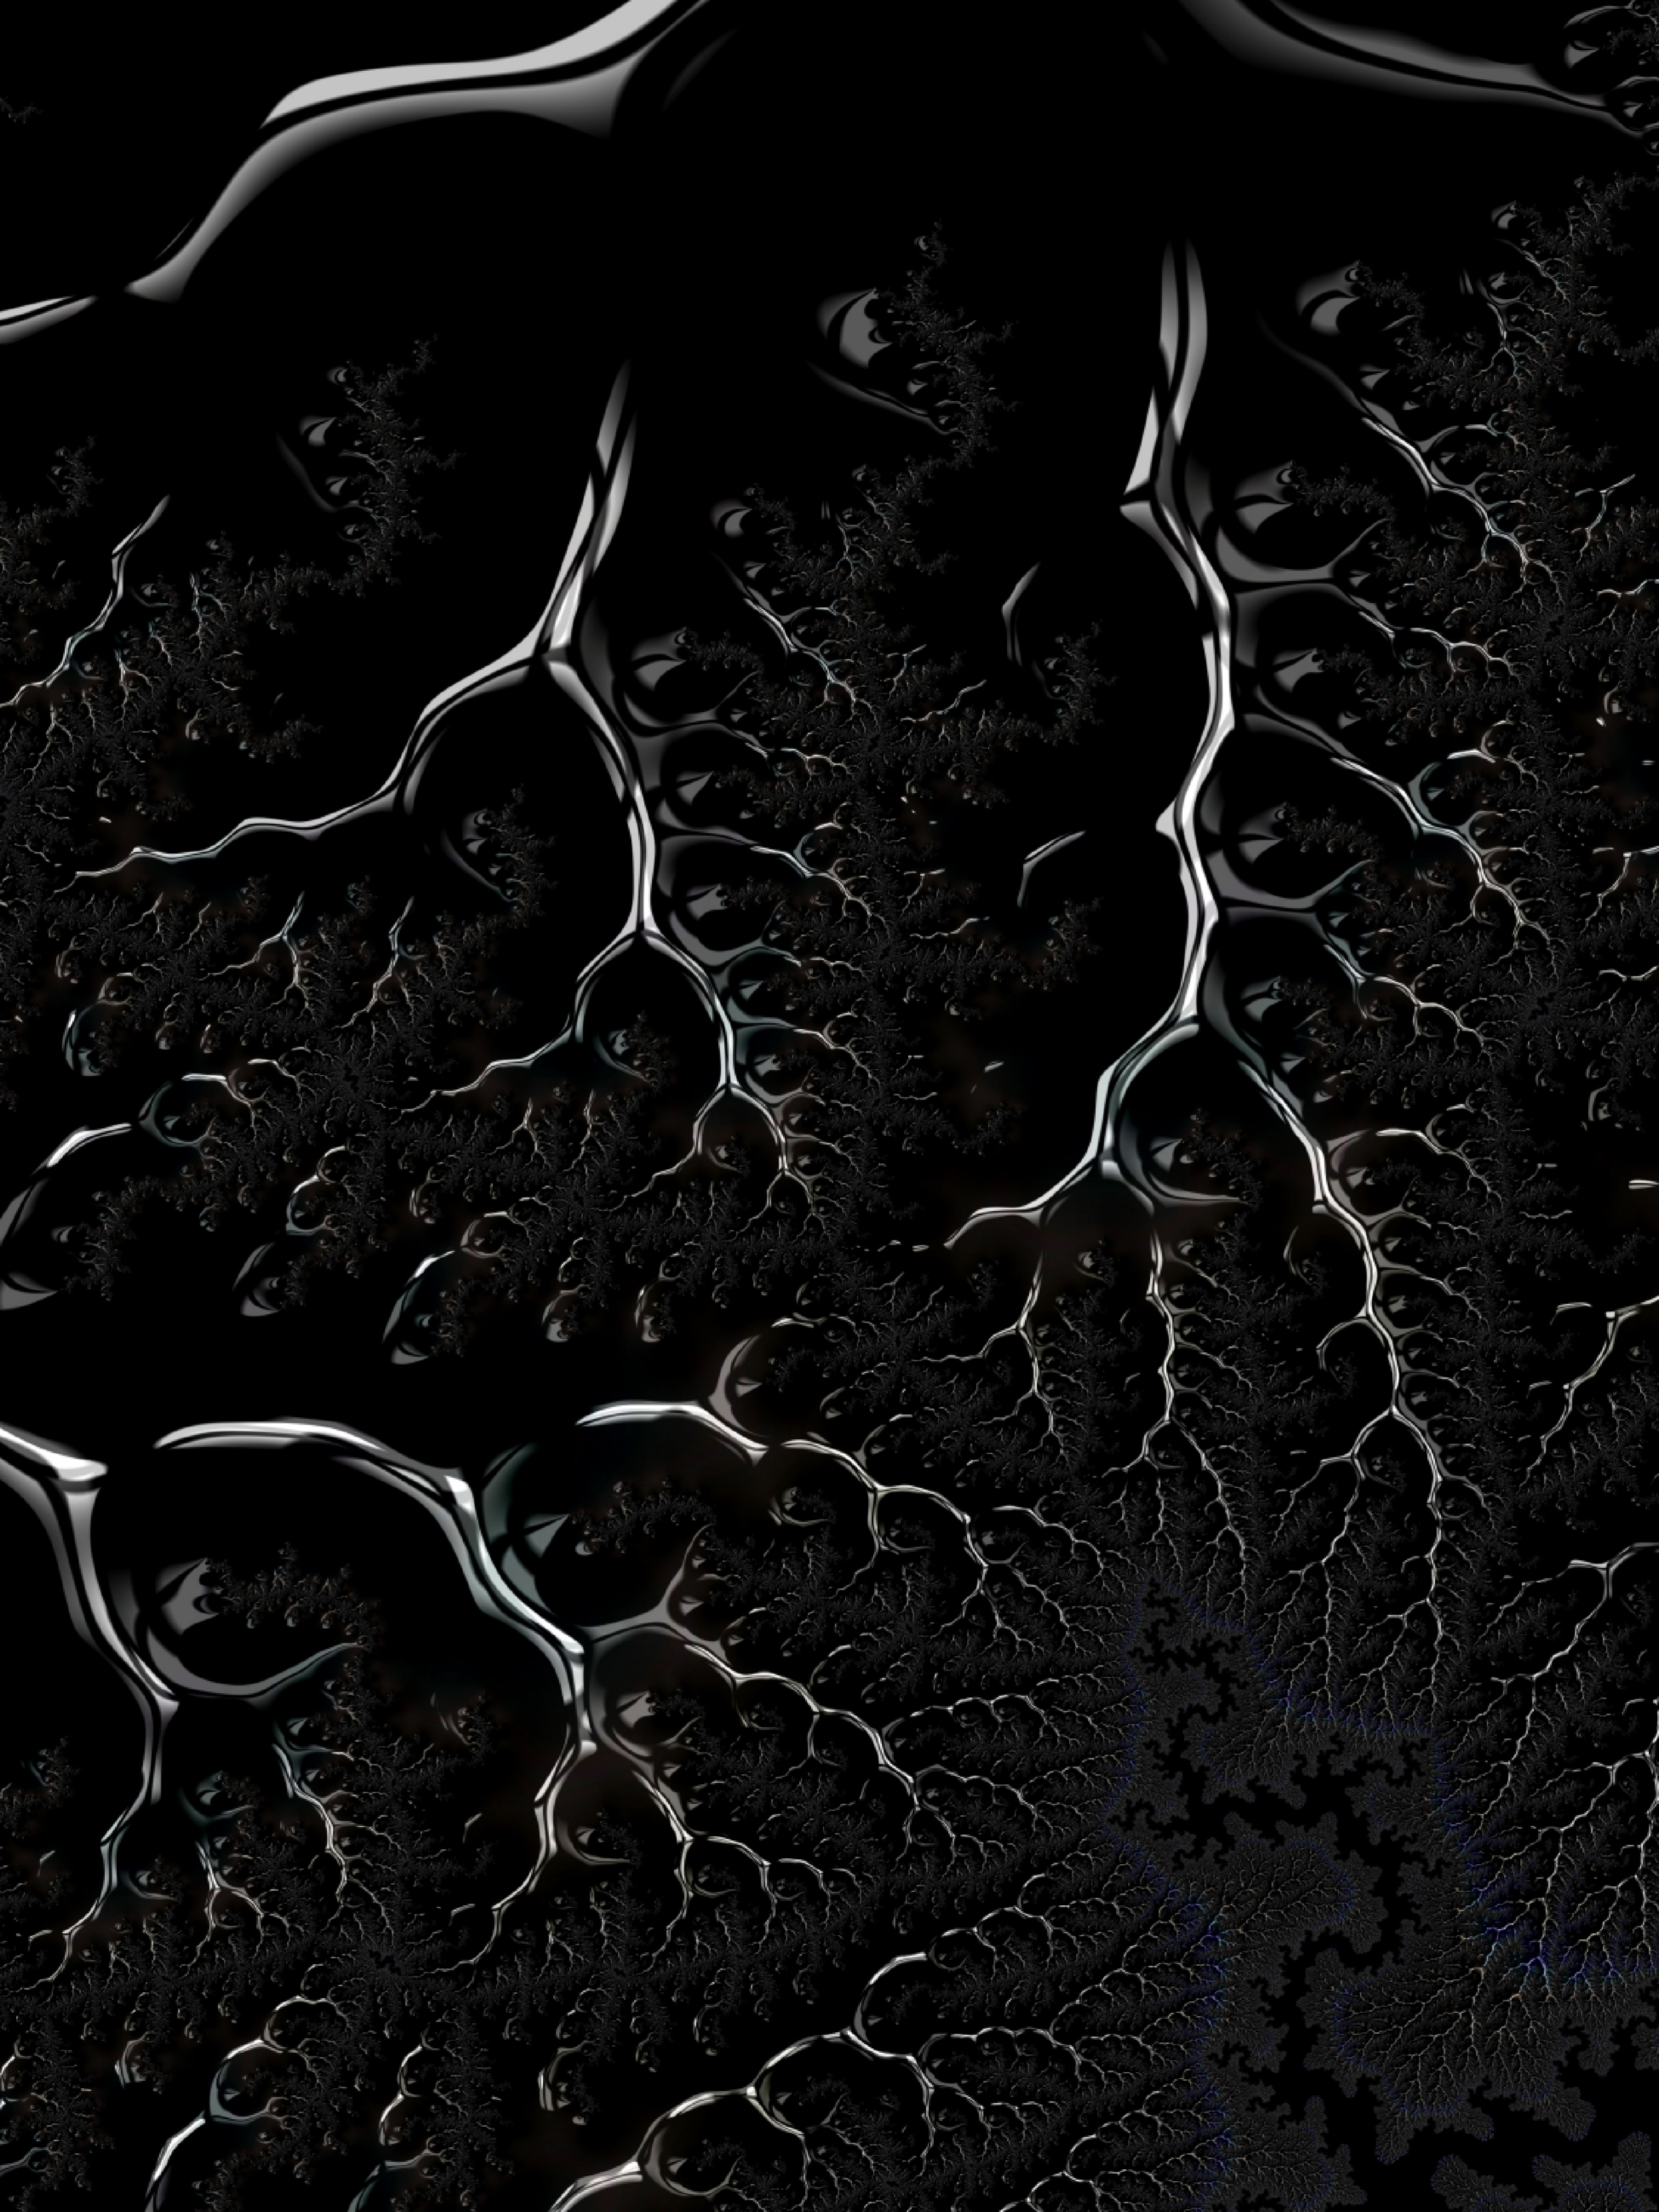 133291 download wallpaper 3D, Dark, Fractal, Branching, Ramified, Crawling screensavers and pictures for free